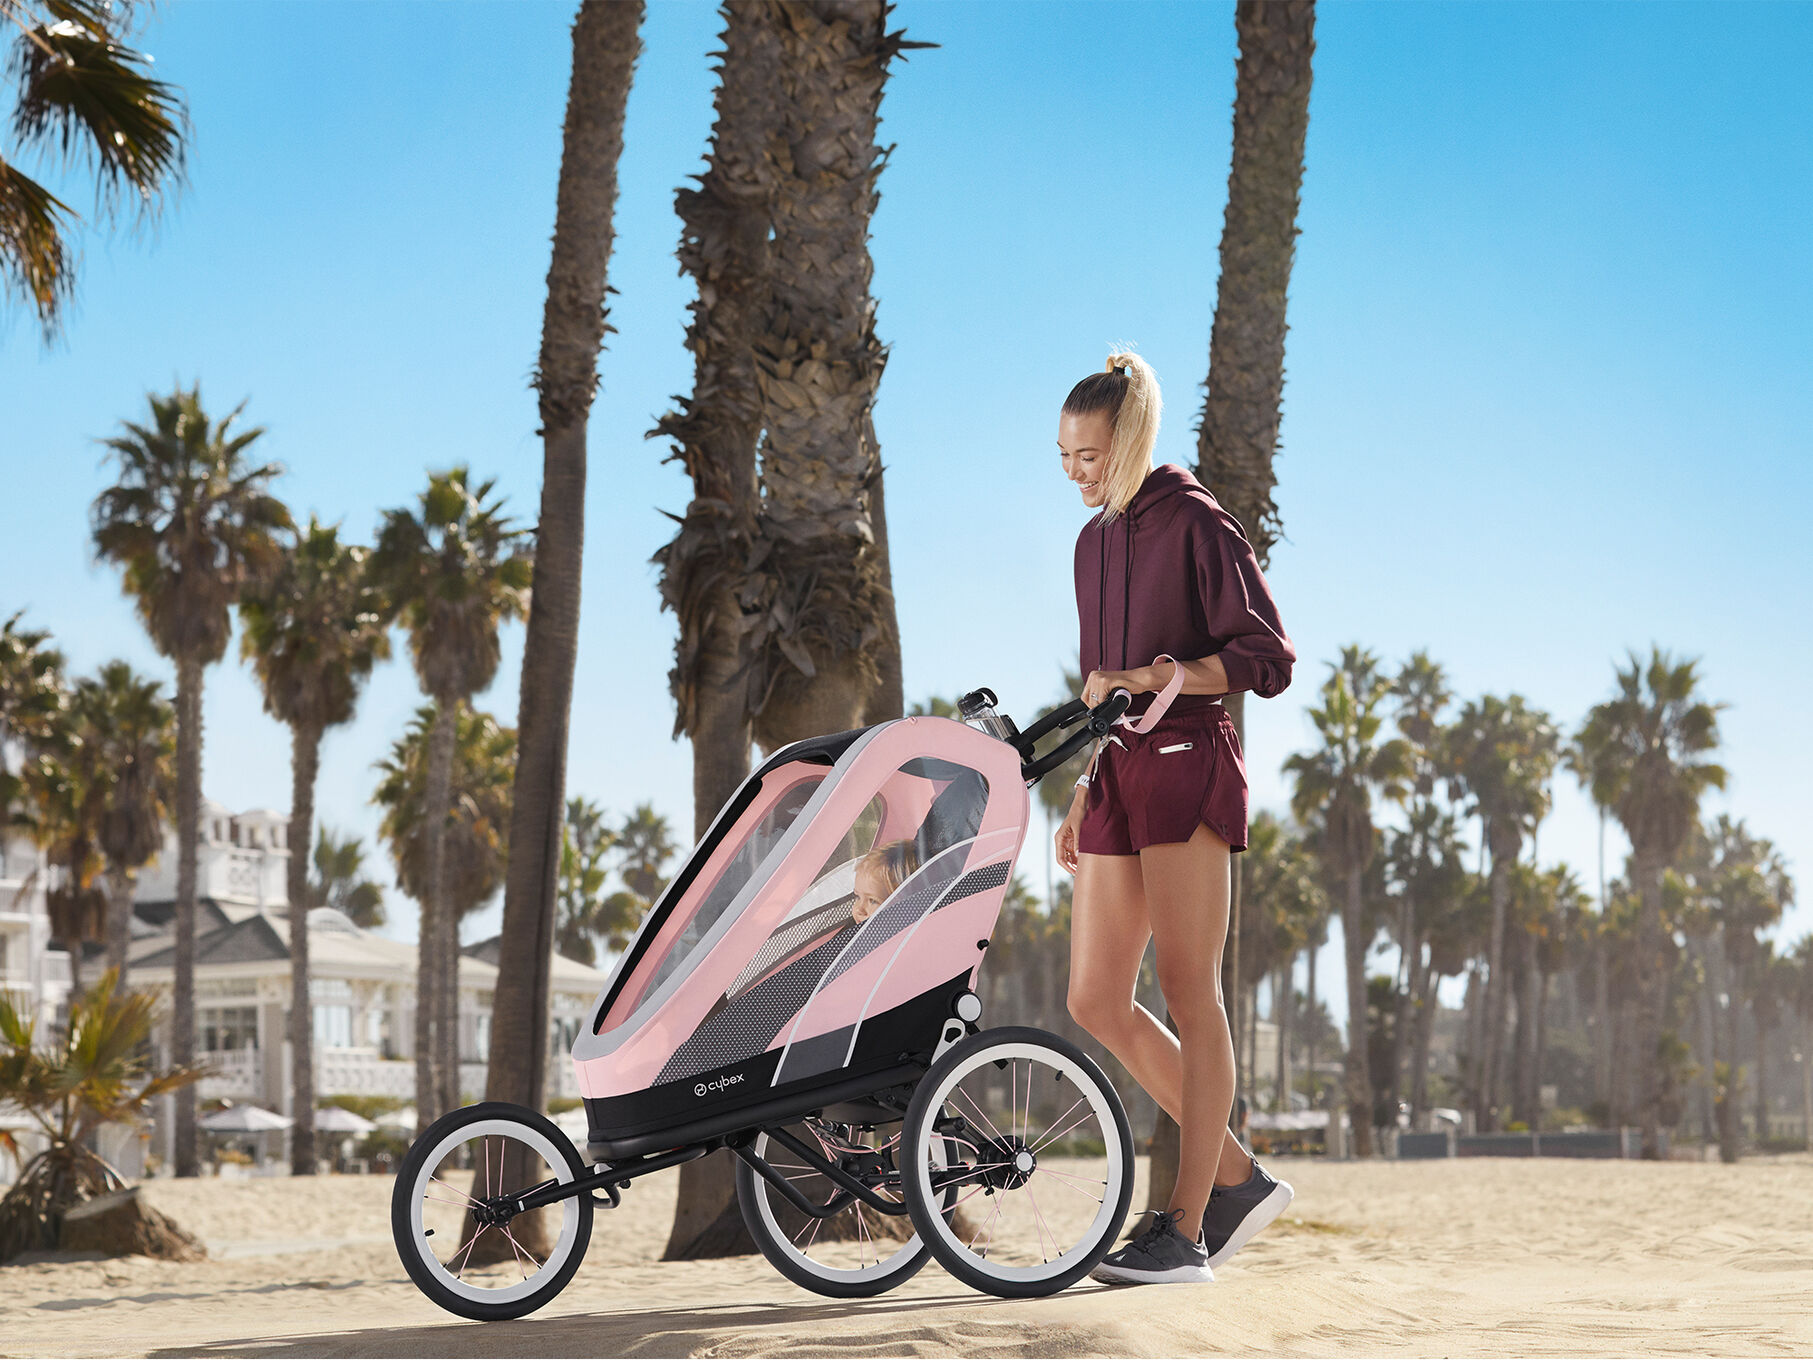 Cybex Gold Sport Zeno Strollers Carousel Campaign Image